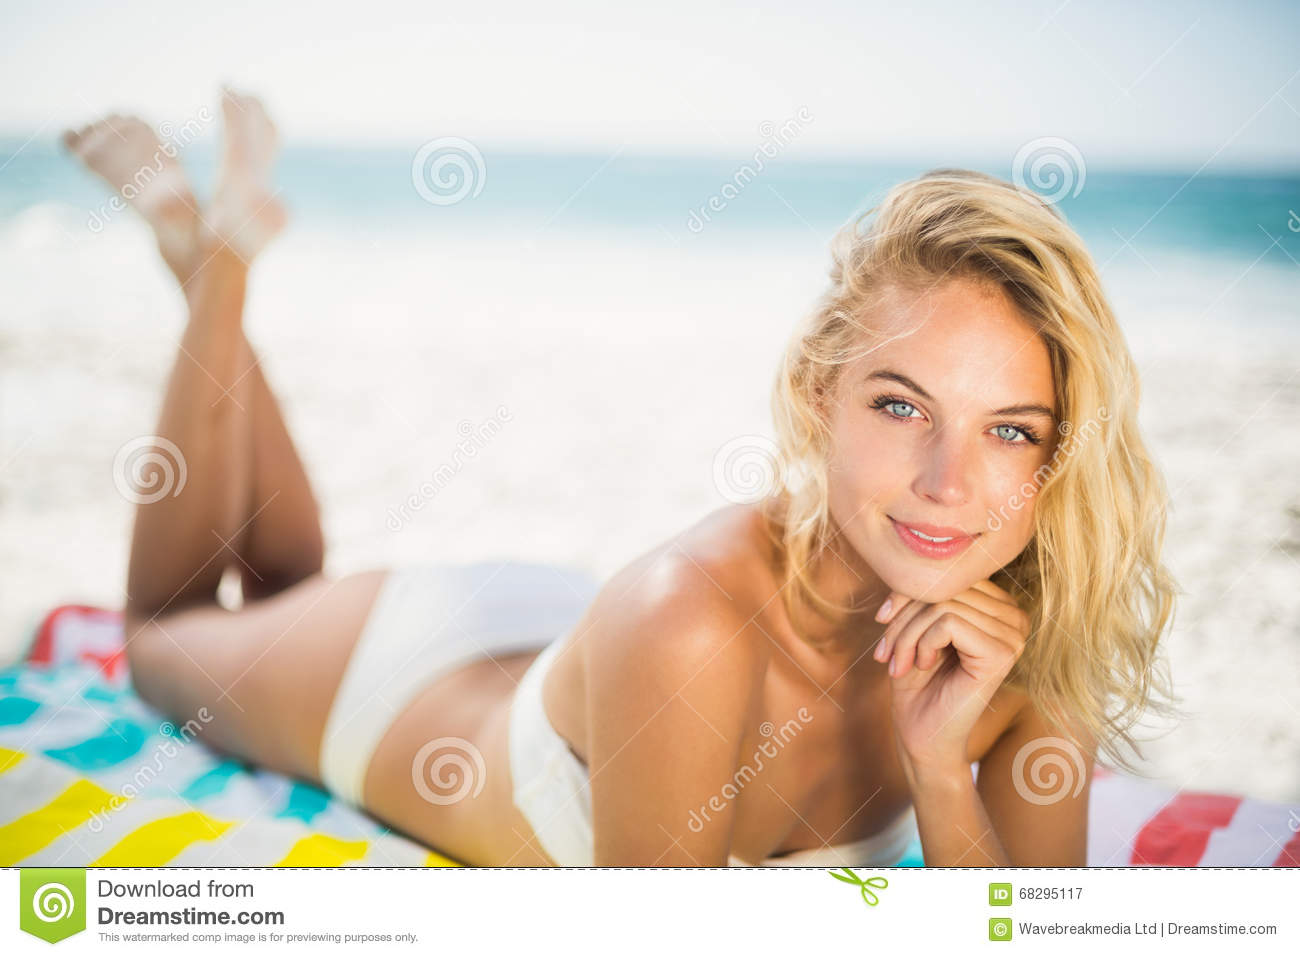 Smiling woman lying on a towel at the beach